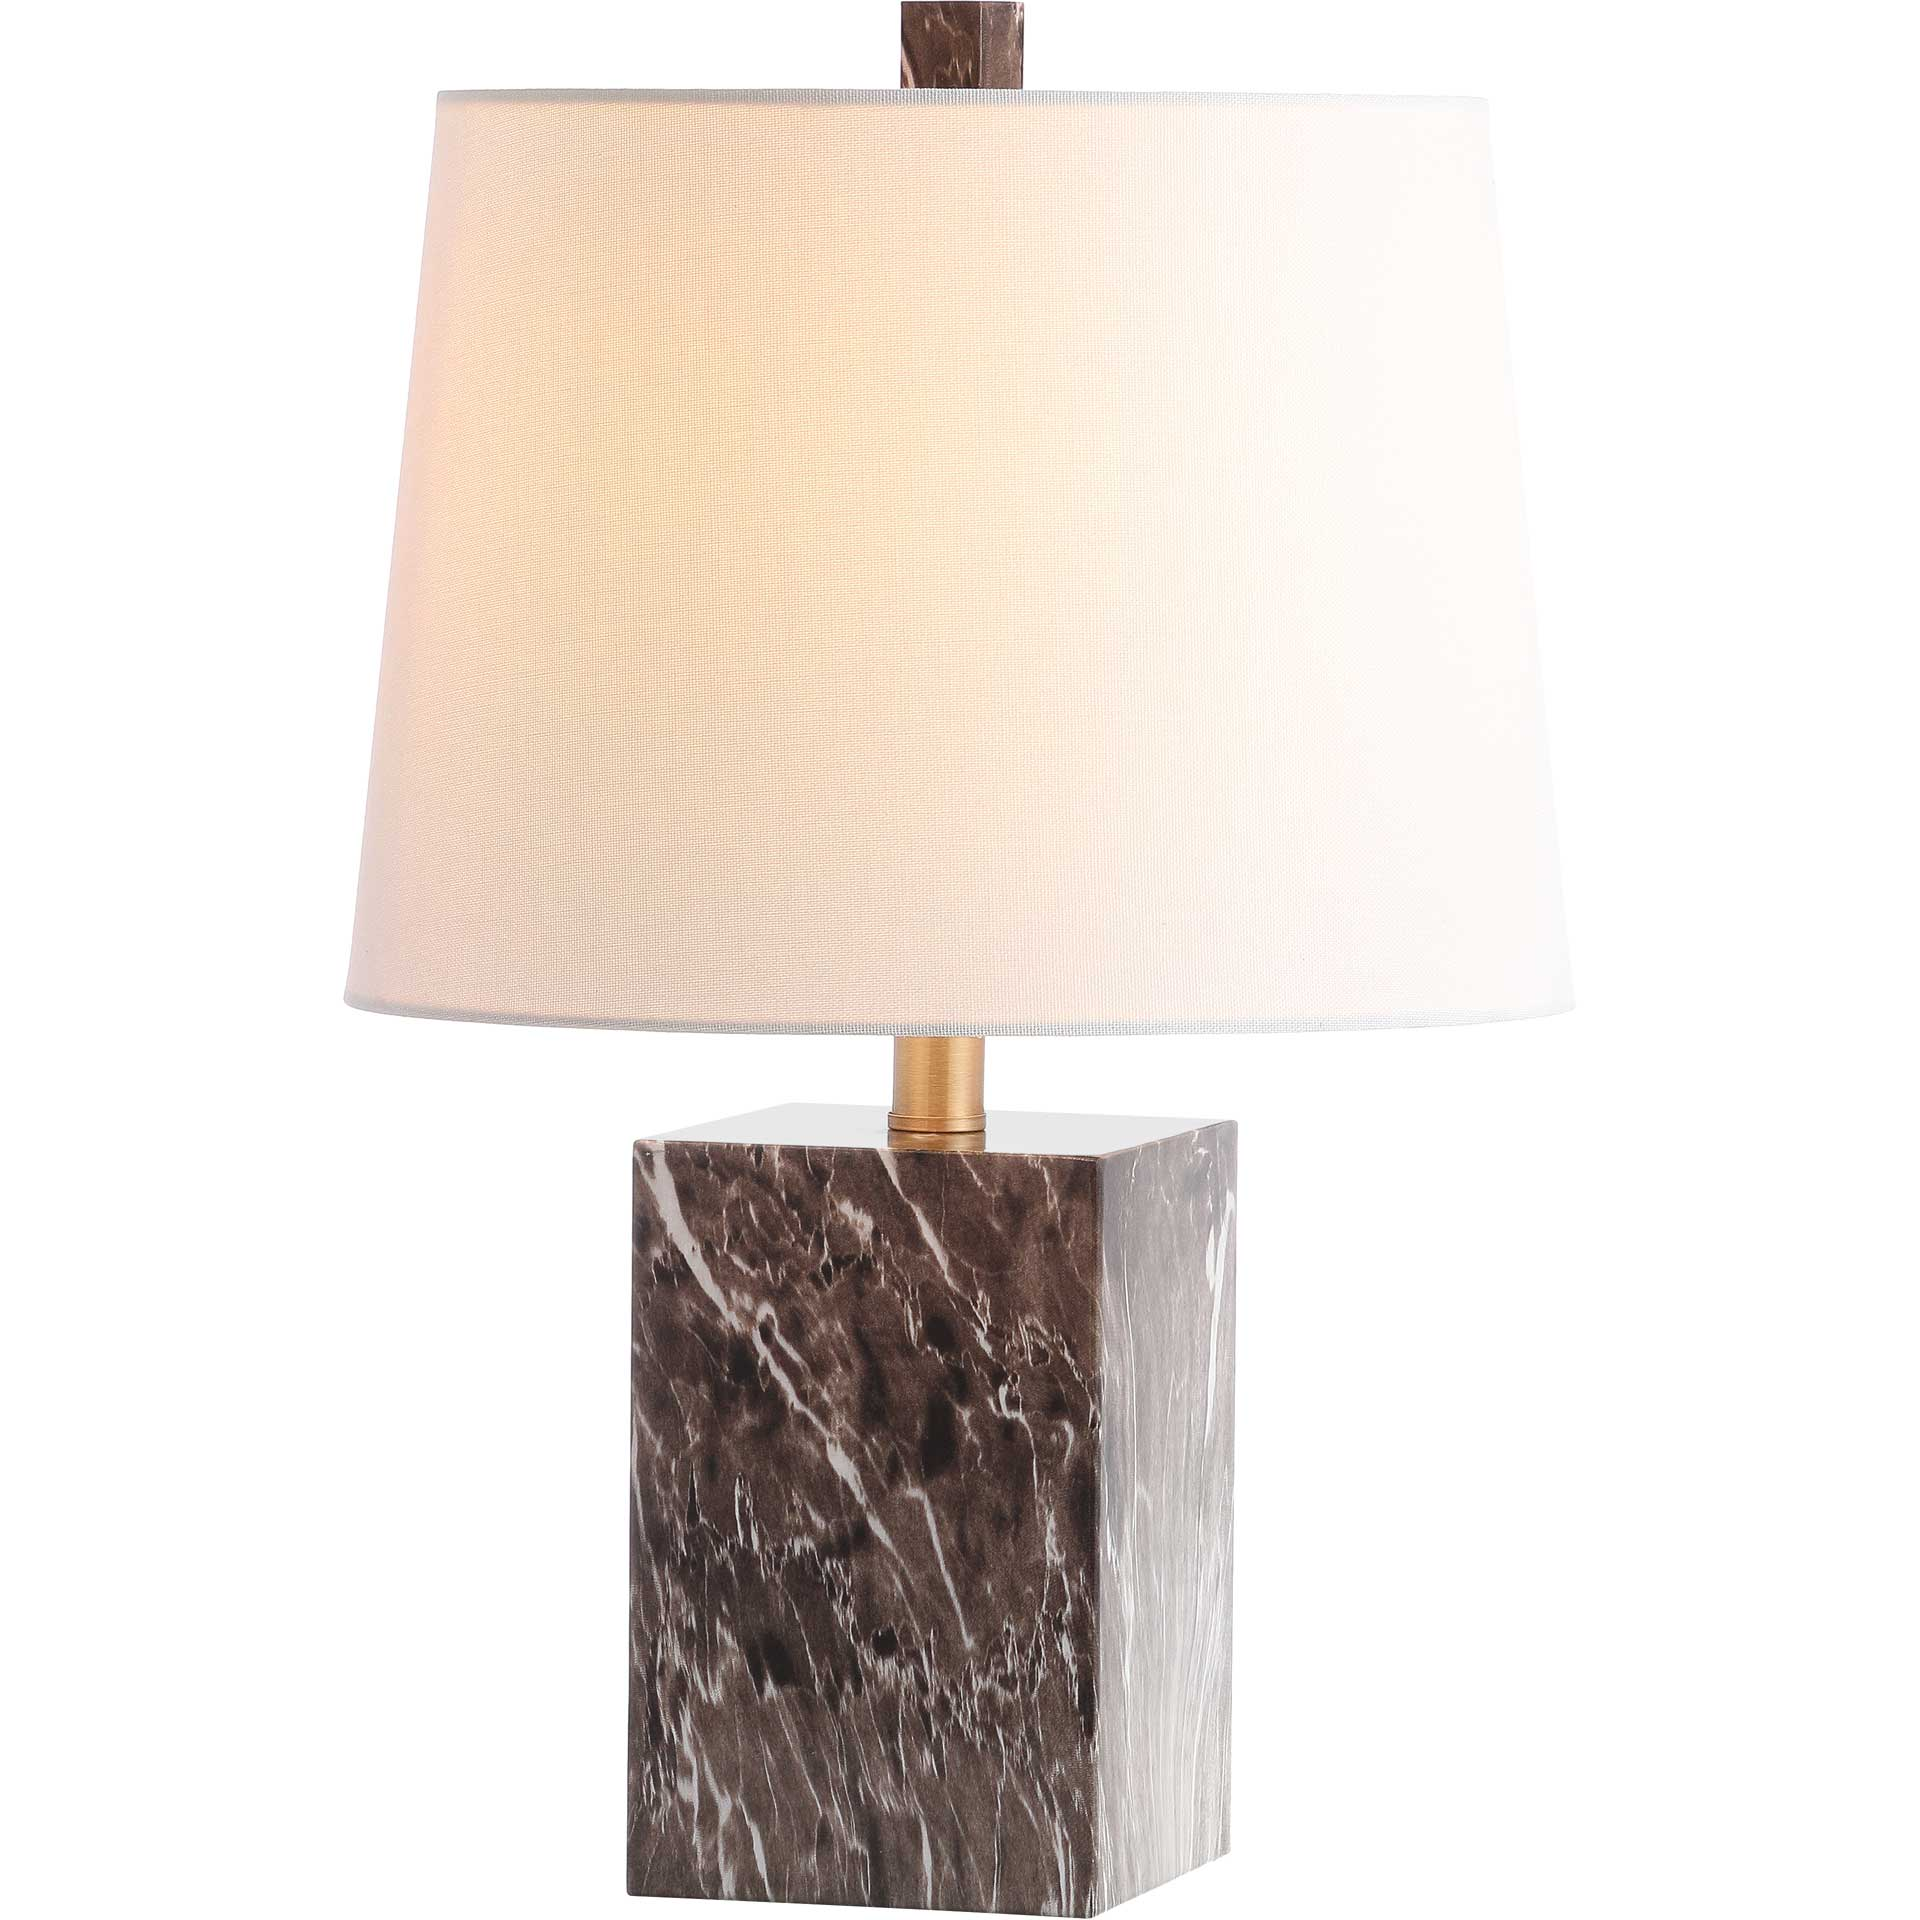 Breakers Table Lamp Brown Marble